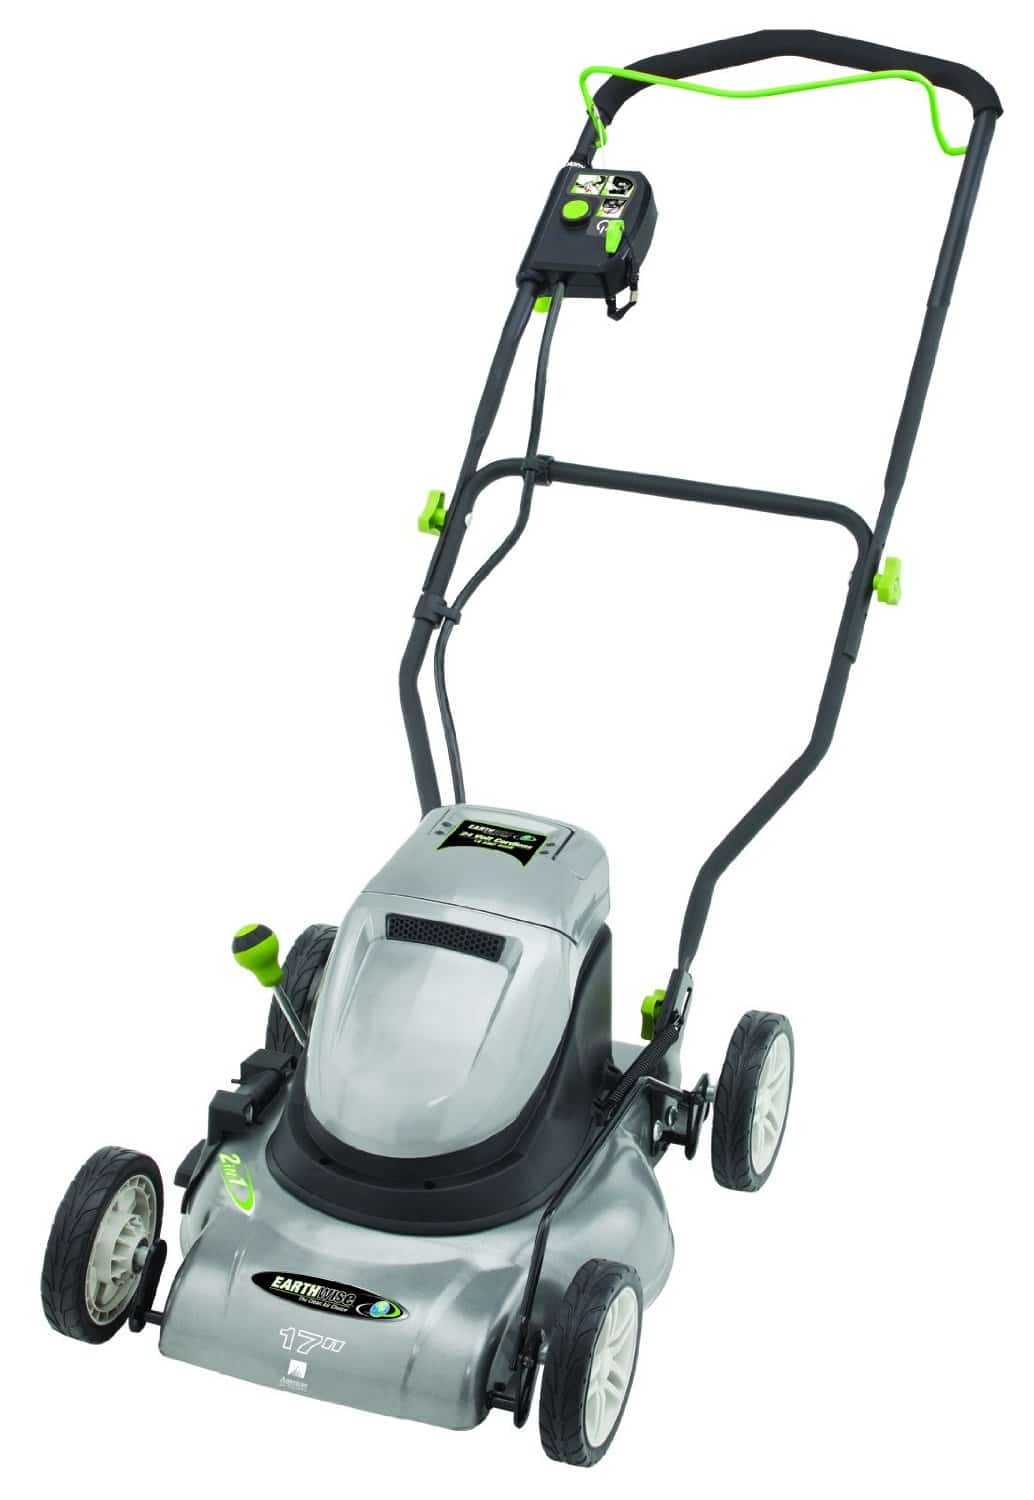 Cordless Lawn Mower : Earthwise cordless electric lawn mower reviews